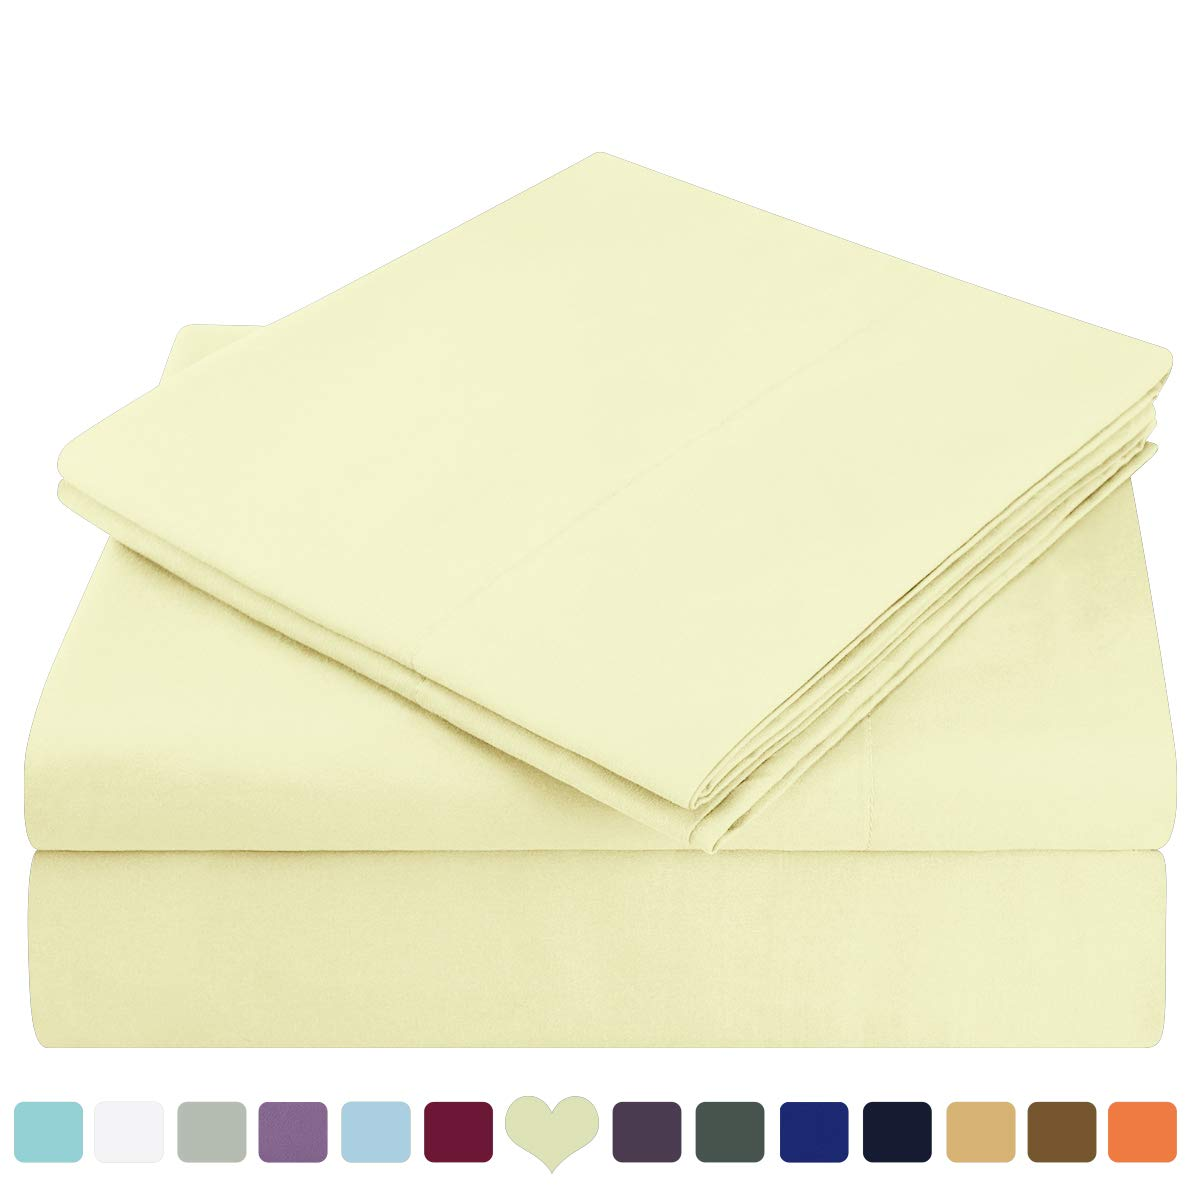 HOMEIDEAS Bed Sheets Set Extra Soft Brushed Microfiber 1800 Bedding Sheets - Deep Pocket, Hypoallergenic, Wrinkle & Fade Free - 4 Piece(King,Pale Yellow) by HOMEIDEAS